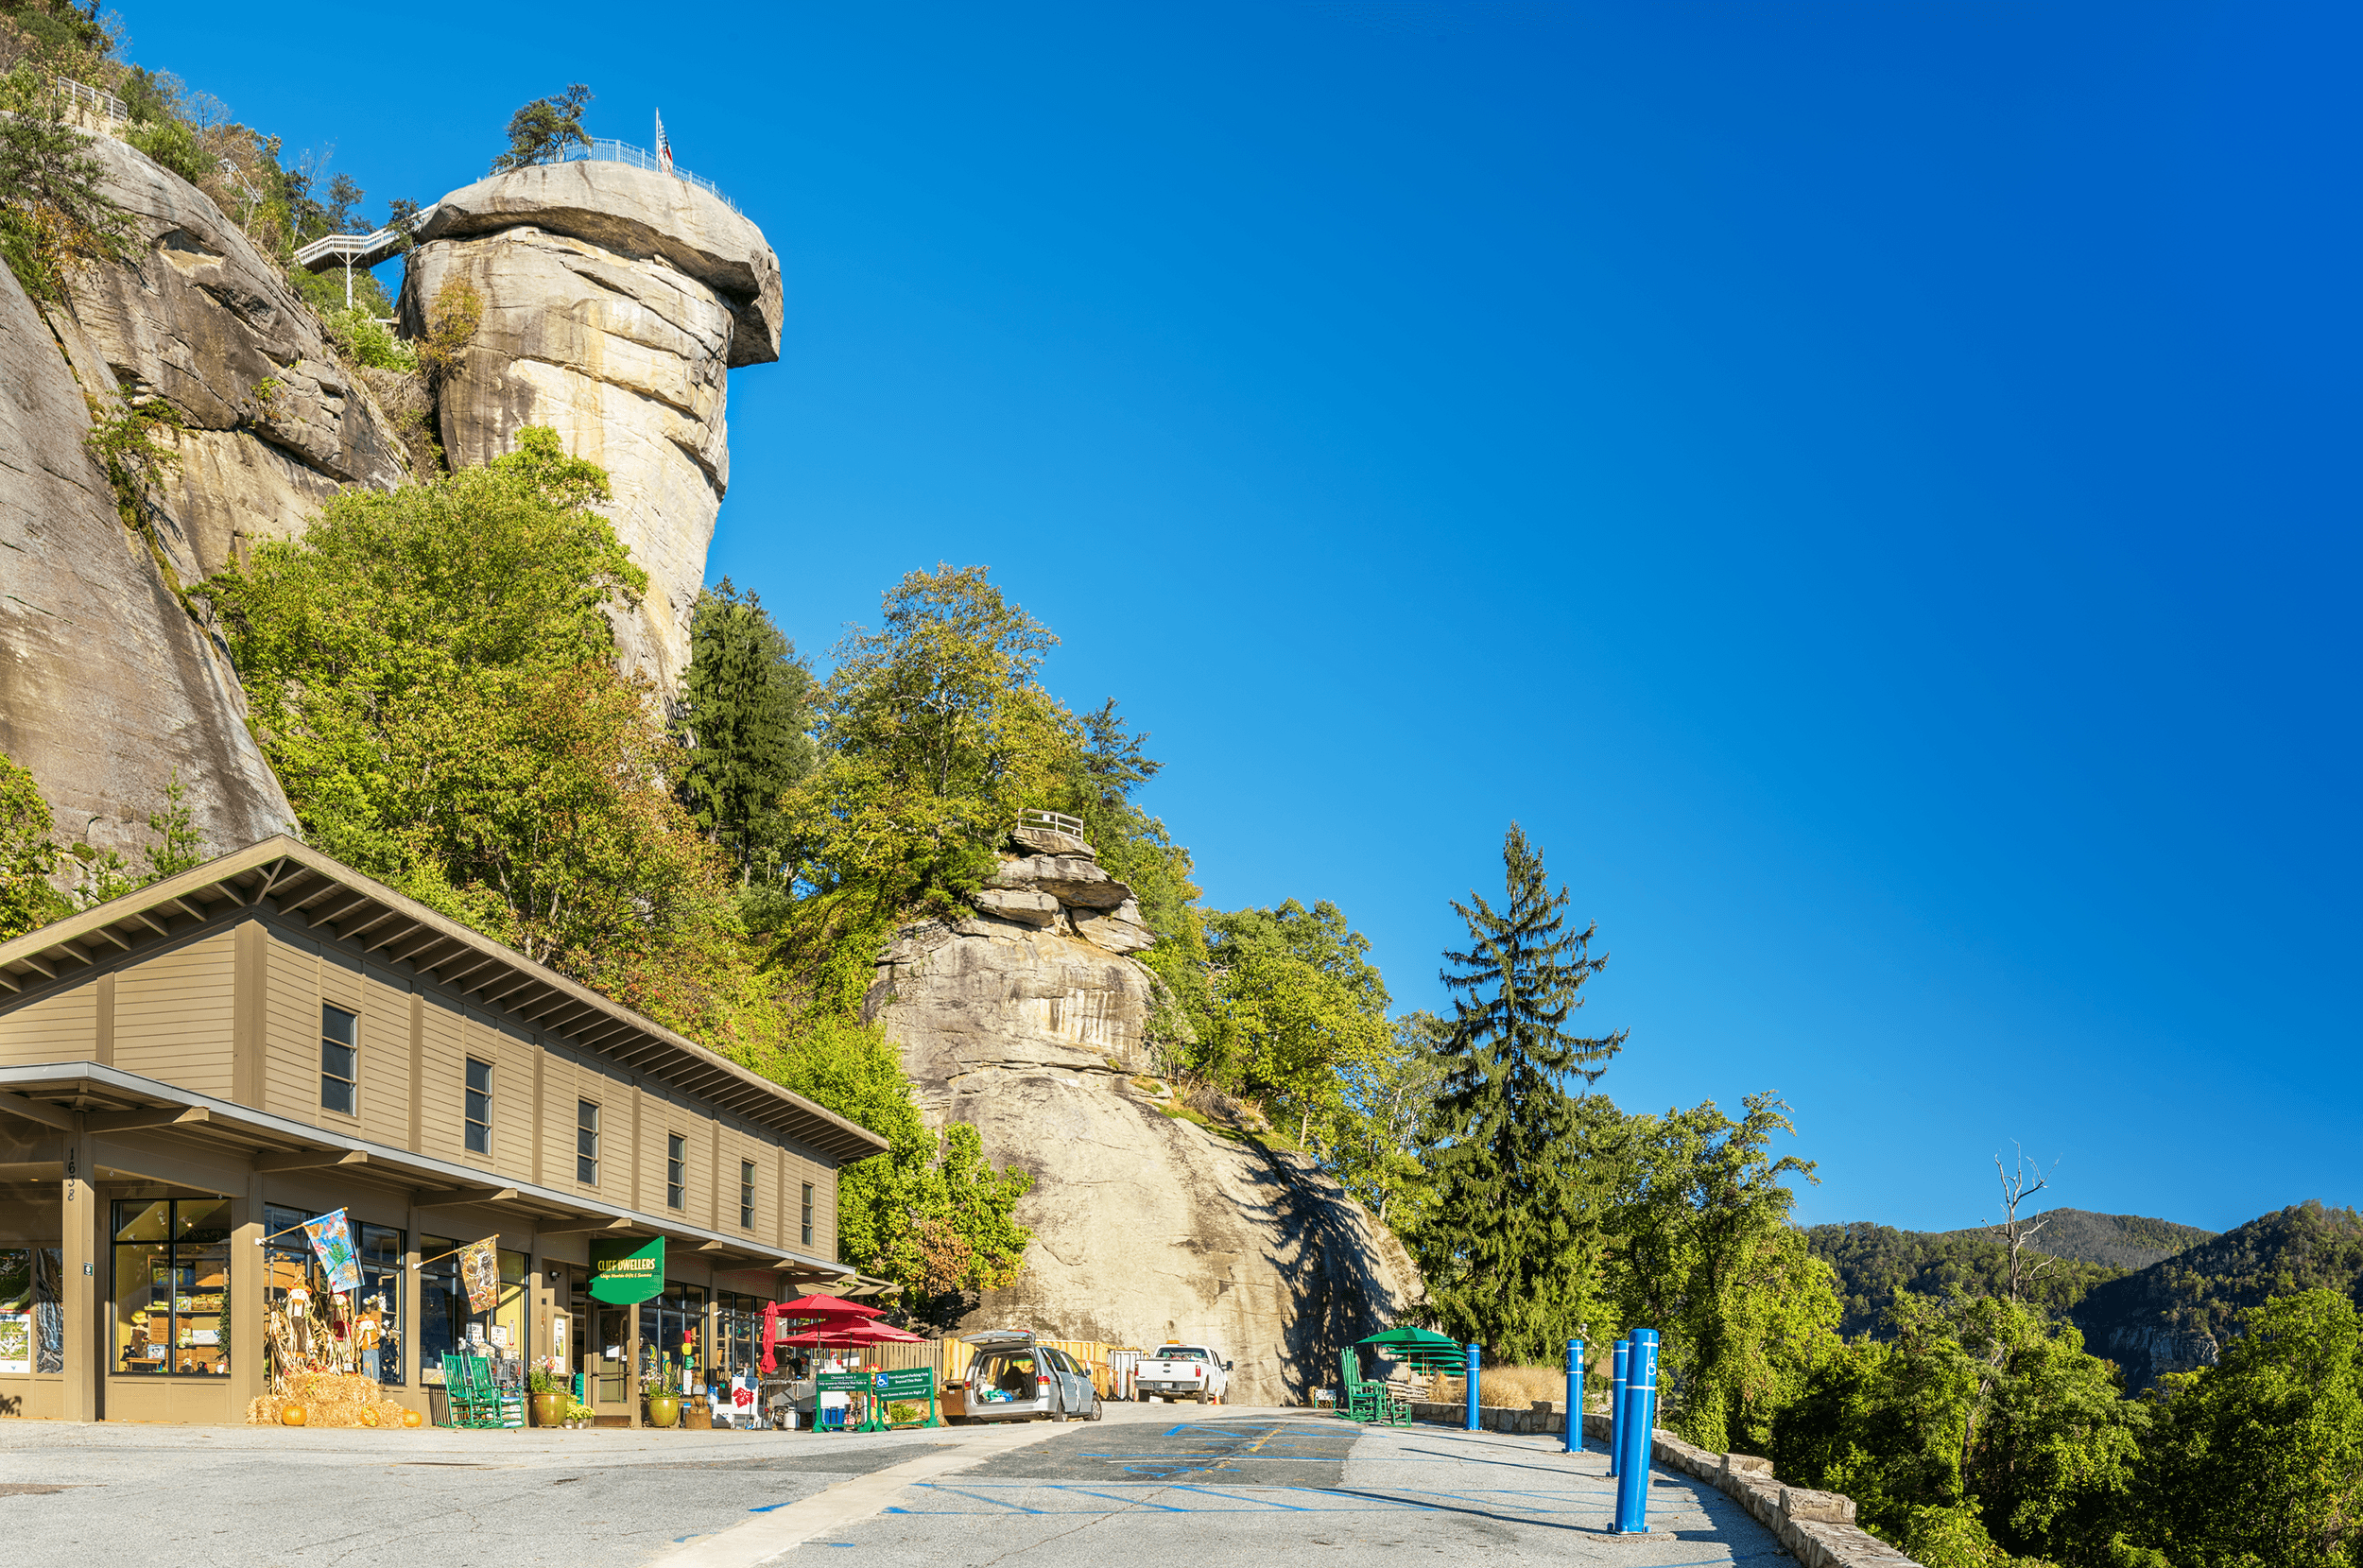 The  Cliff Dwellers  is a gift shop, and to its left is a 198-foot tunnel leading to the lift that brings you to the  Sky Lounge . The 26-story elevator shaft was blasted through solid rock. You can also take the  Outcroppings Trail , which starts passed the gift shop and leads to the top of  Chimney Rock  through a network of stairs. Should you prefer to take the elevator, please call ahead to confirm that it is operational during your planned visit.